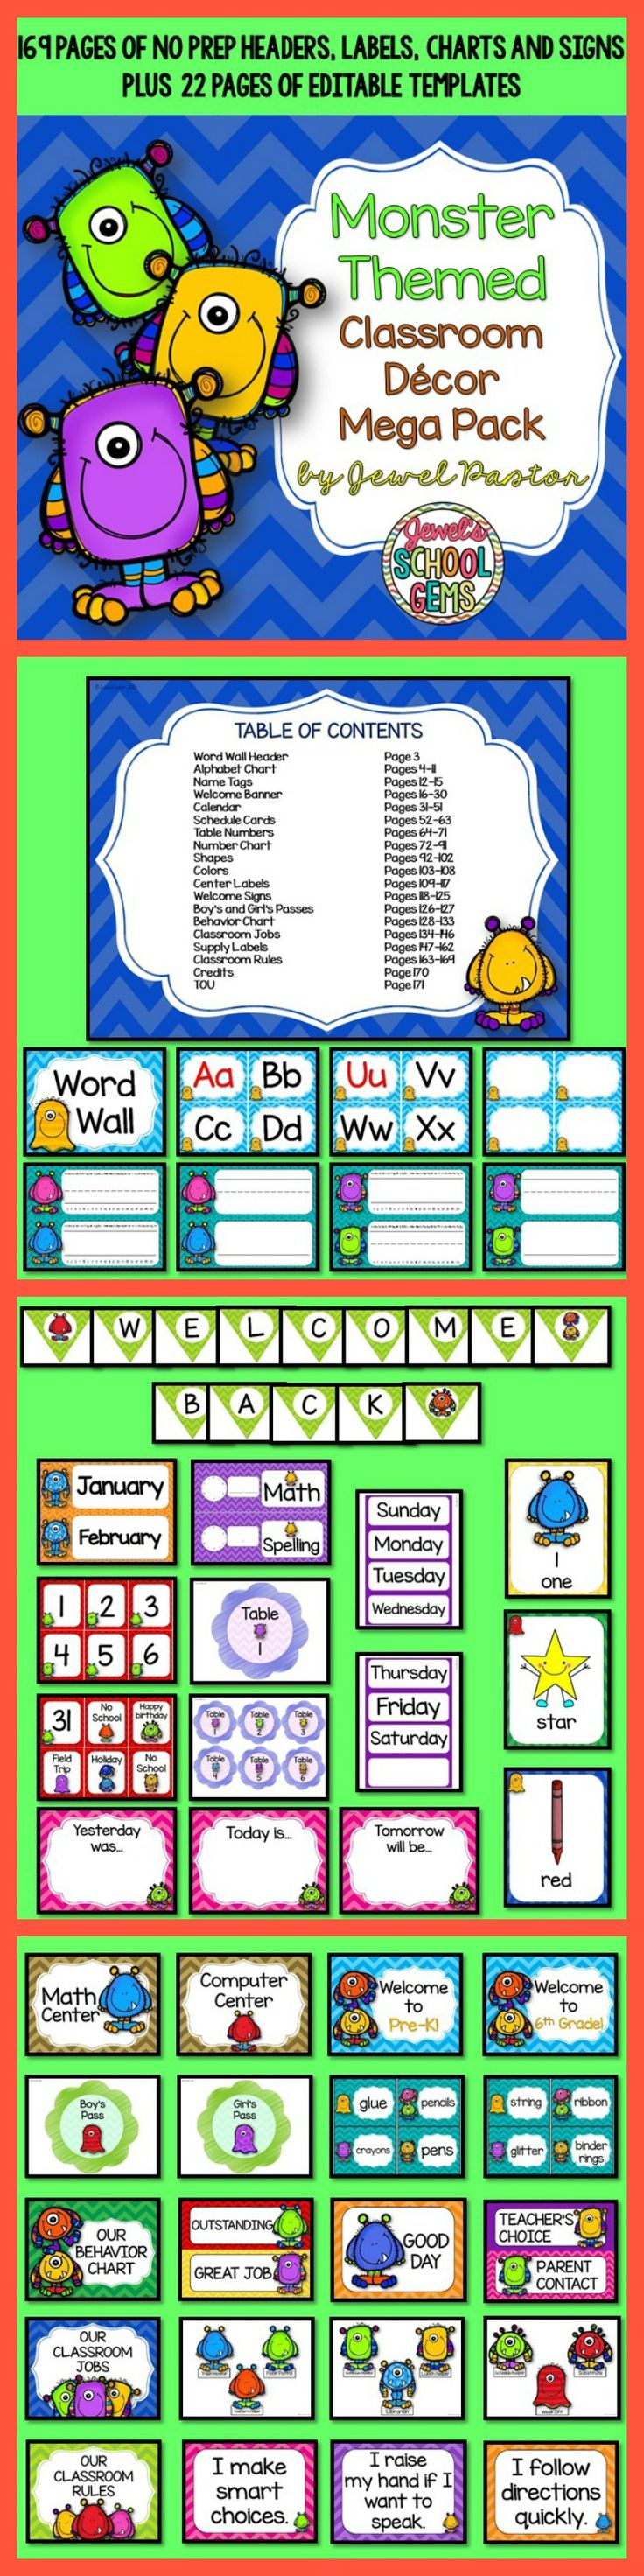 Monster Theme : Monster Theme | This Monster Themed Classroom Decor Mega Pack comes with 169 pages of NO PREP HEADERS, LABELS, CHARTS AND SIGNS plus 22 pages of EDITABLE PARTS/TEMPLATES.